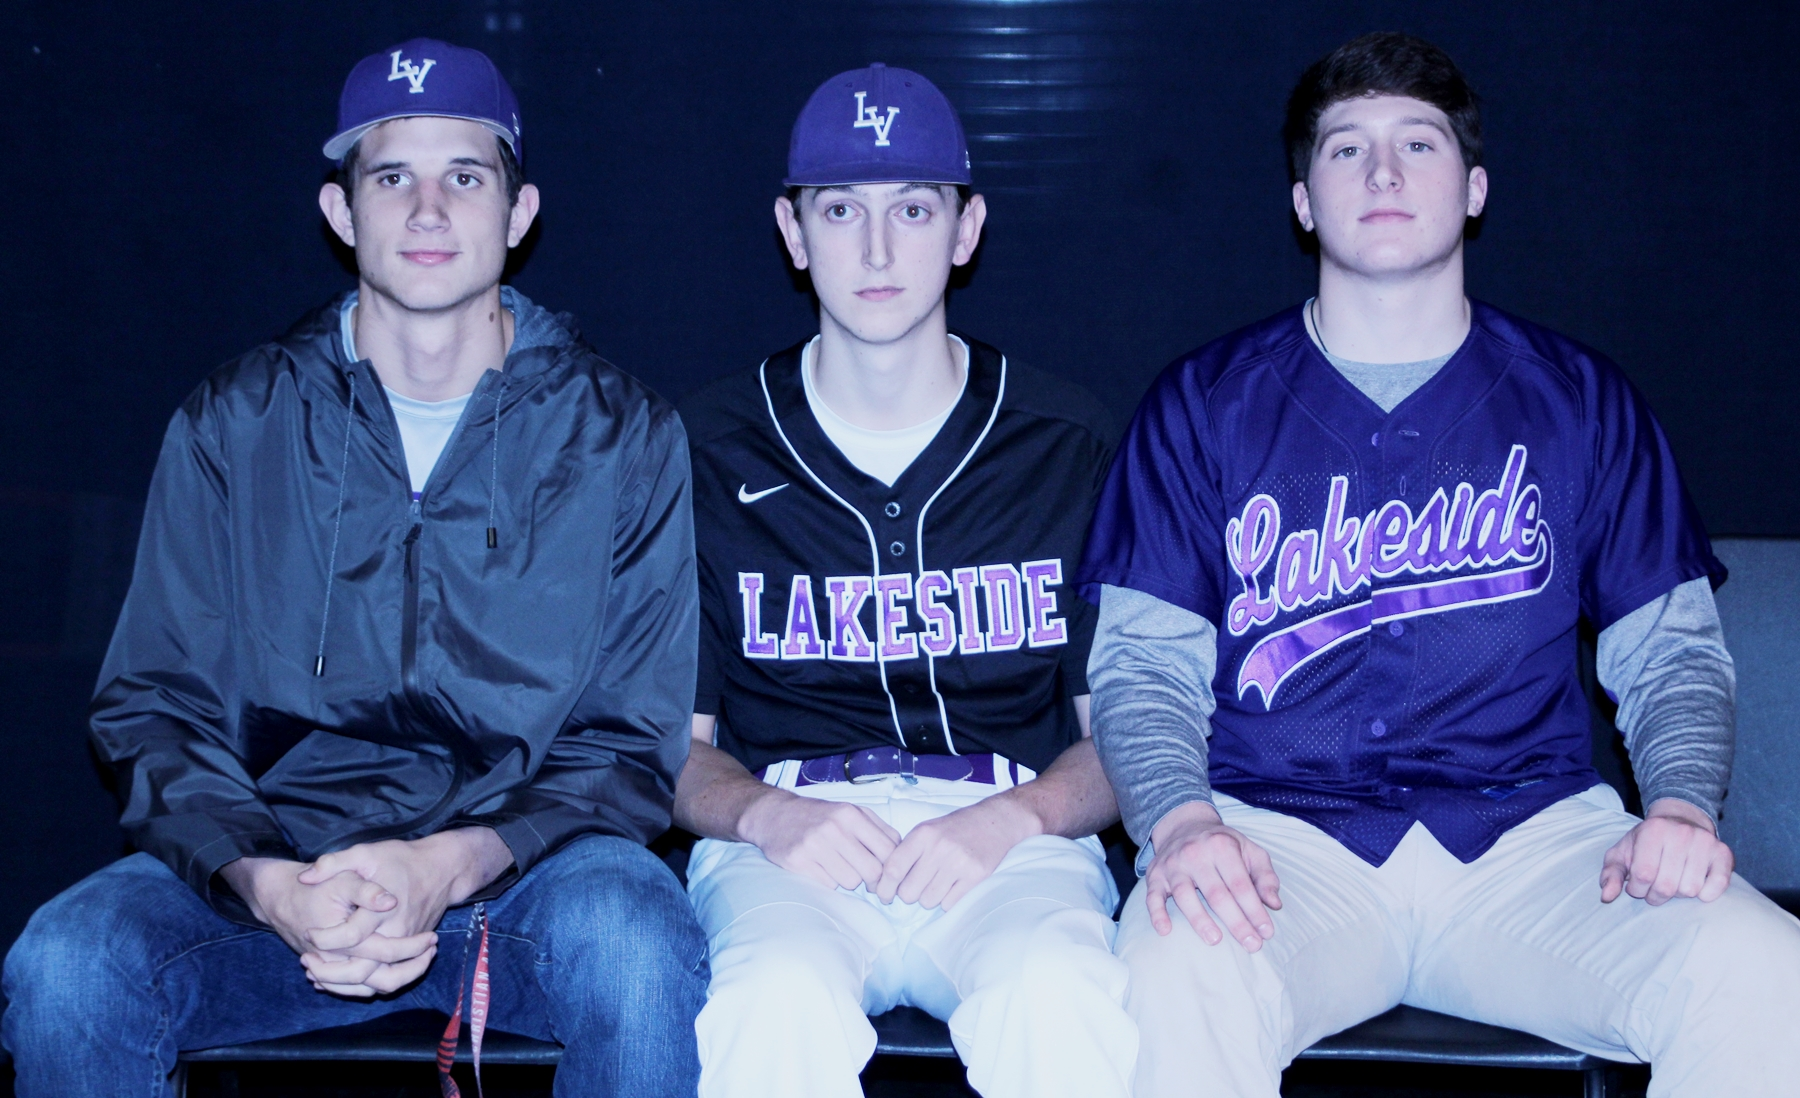 Lakeside Vikings (l-r) Matthew Holt, Jack Tansill and Charlie Ludwick